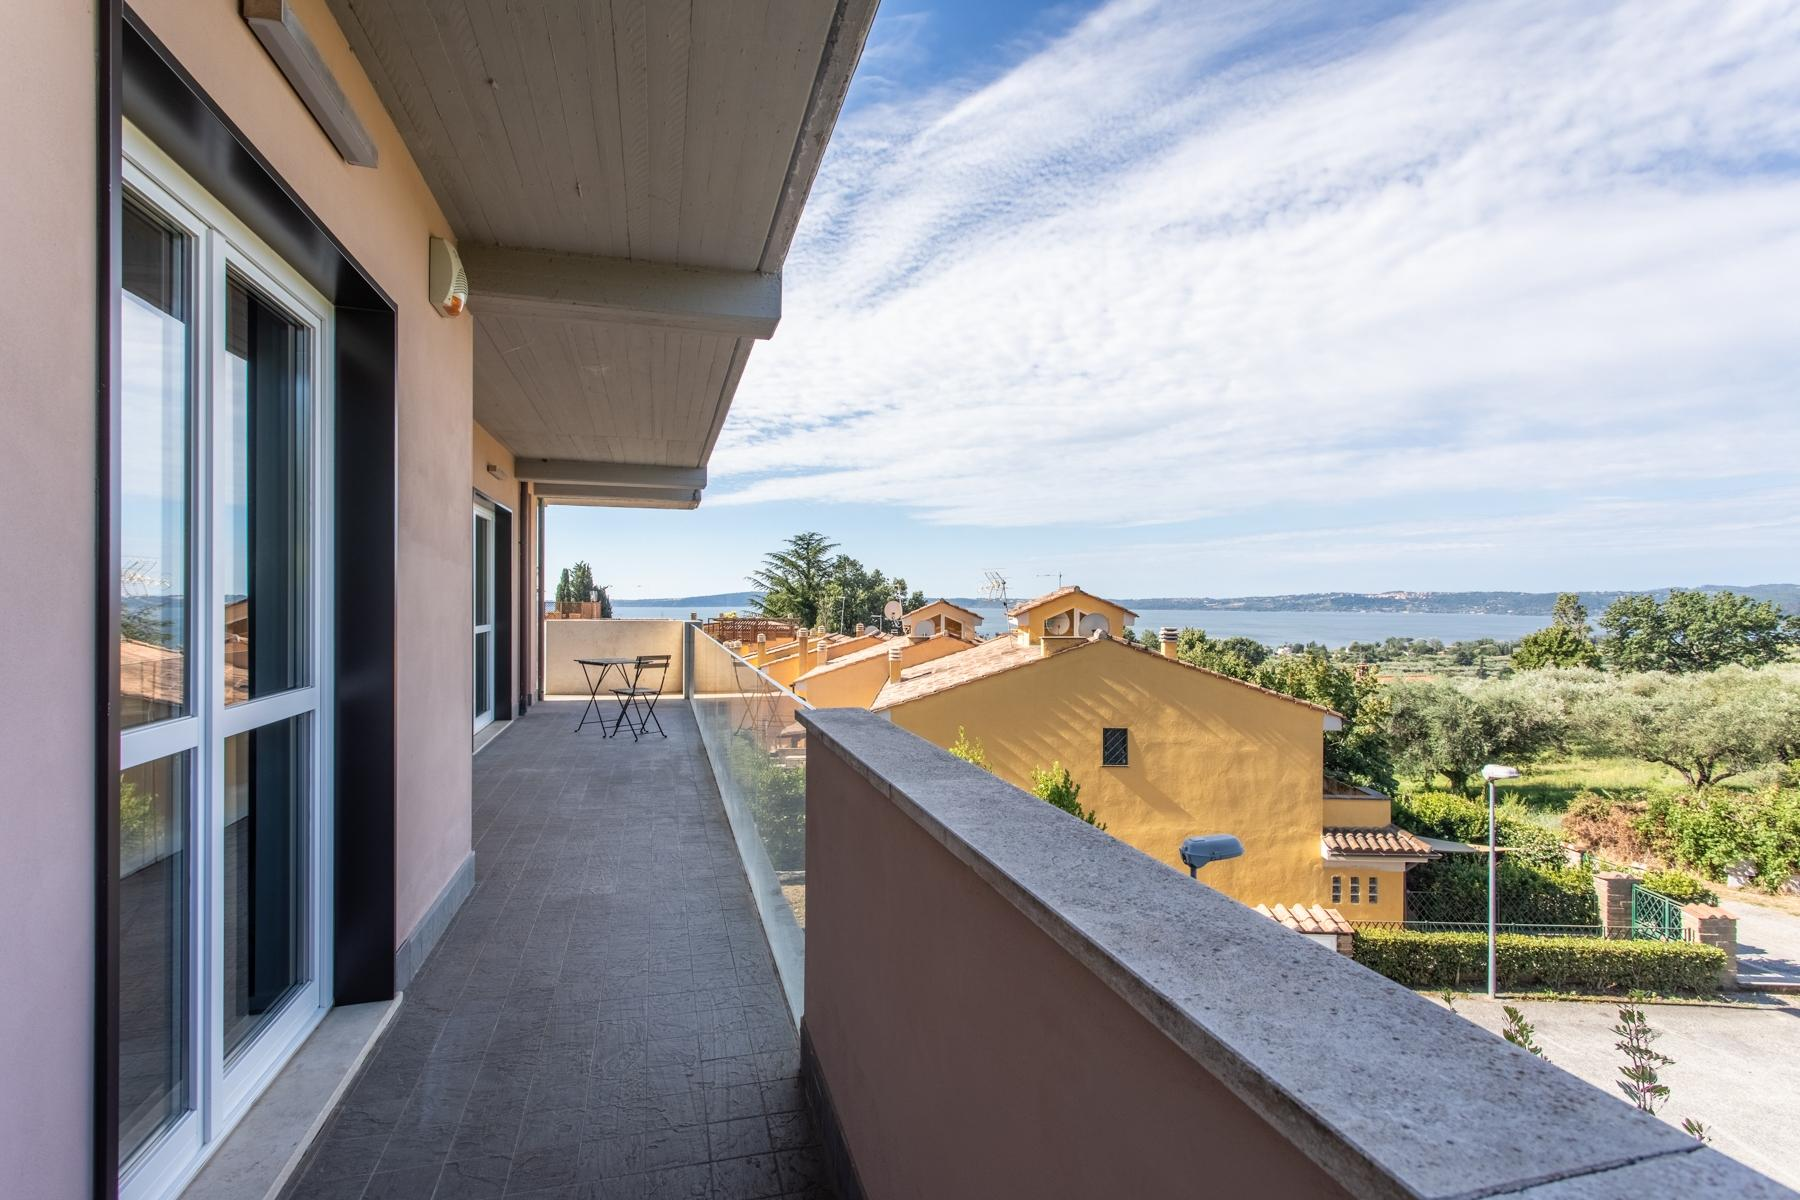 Front Lake Renovated apartment in Trevignano - 12